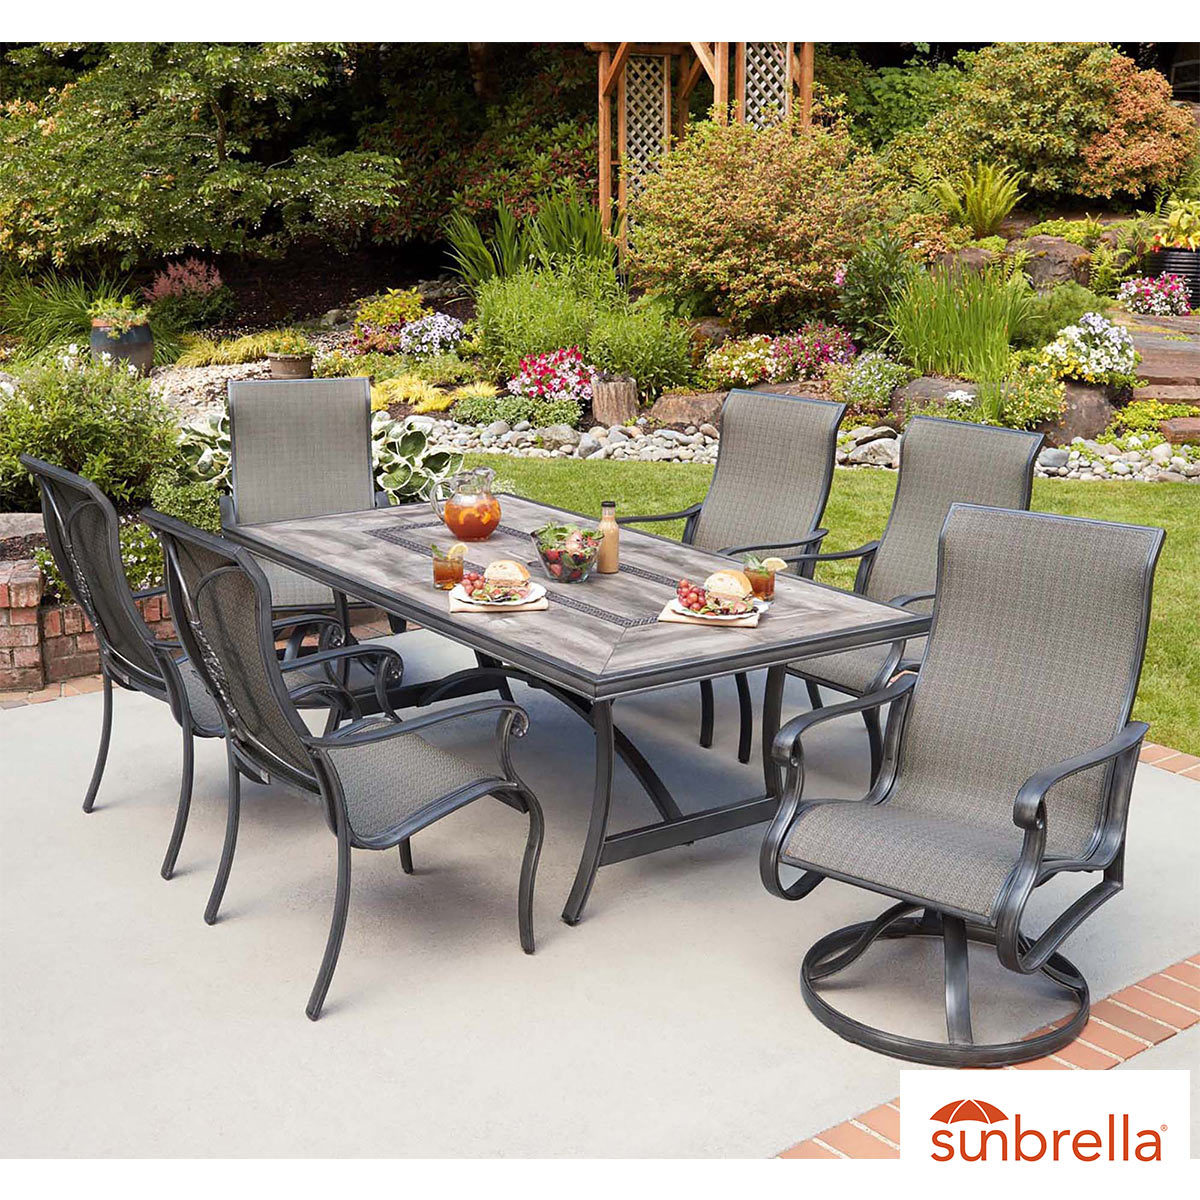 Agio Campbell 12 Piece Sling Dining Set + Cover  Costco UK